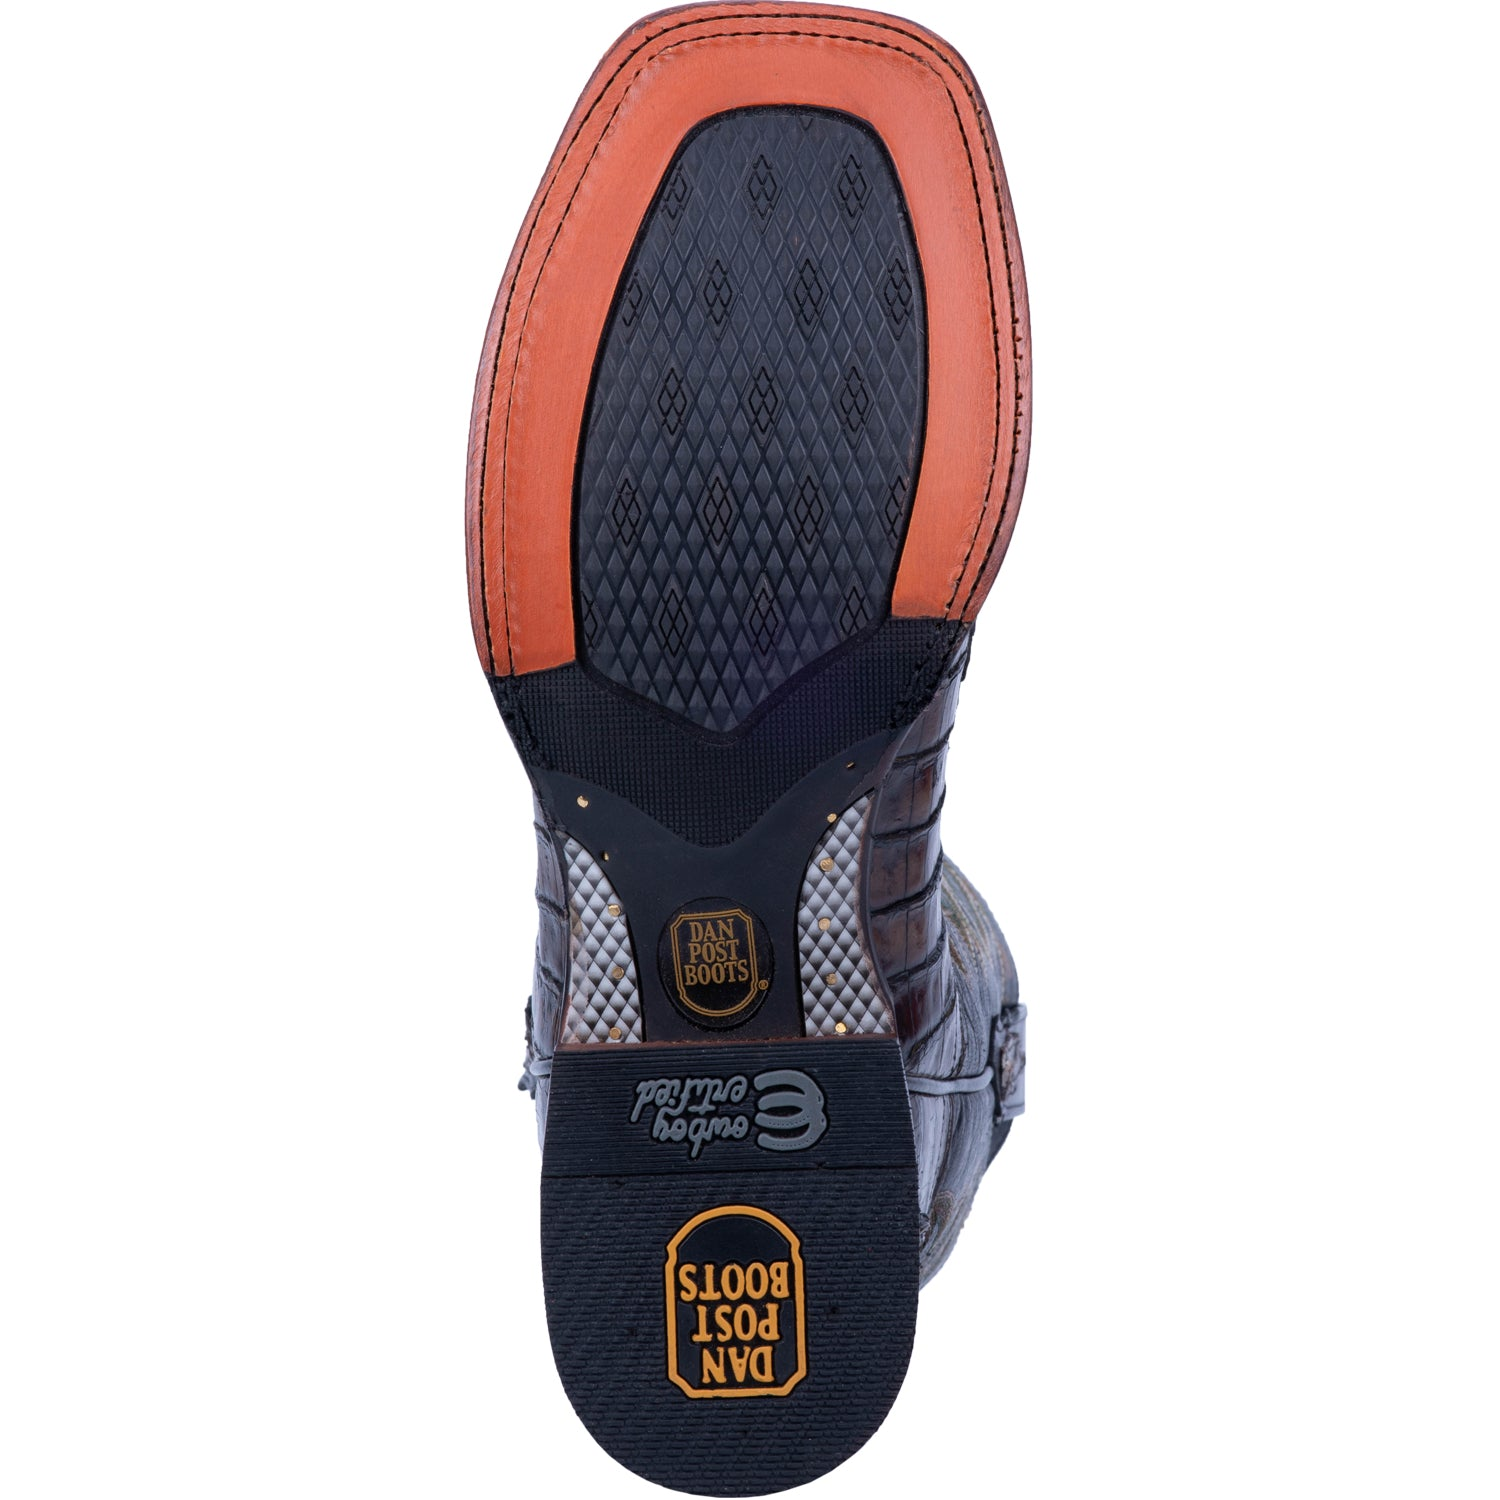 KINGSLY CAIMAN BOOT 5547780112426